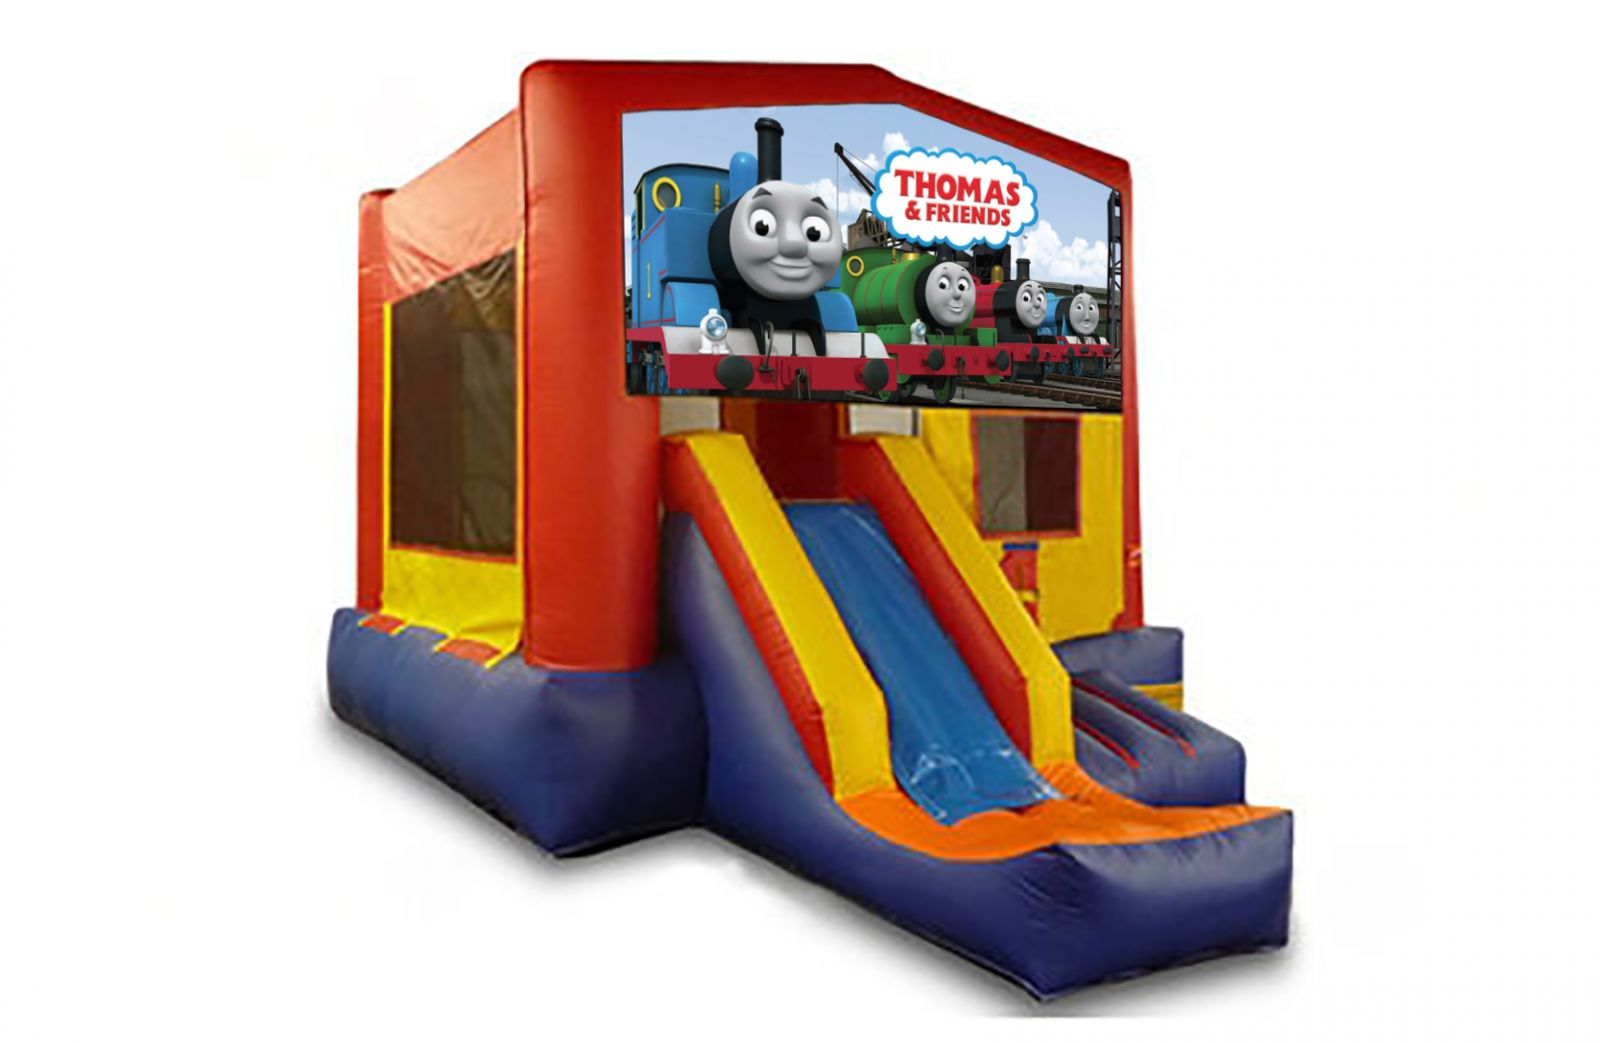 Red And Blue Thomas The Train Bounce House With Slide